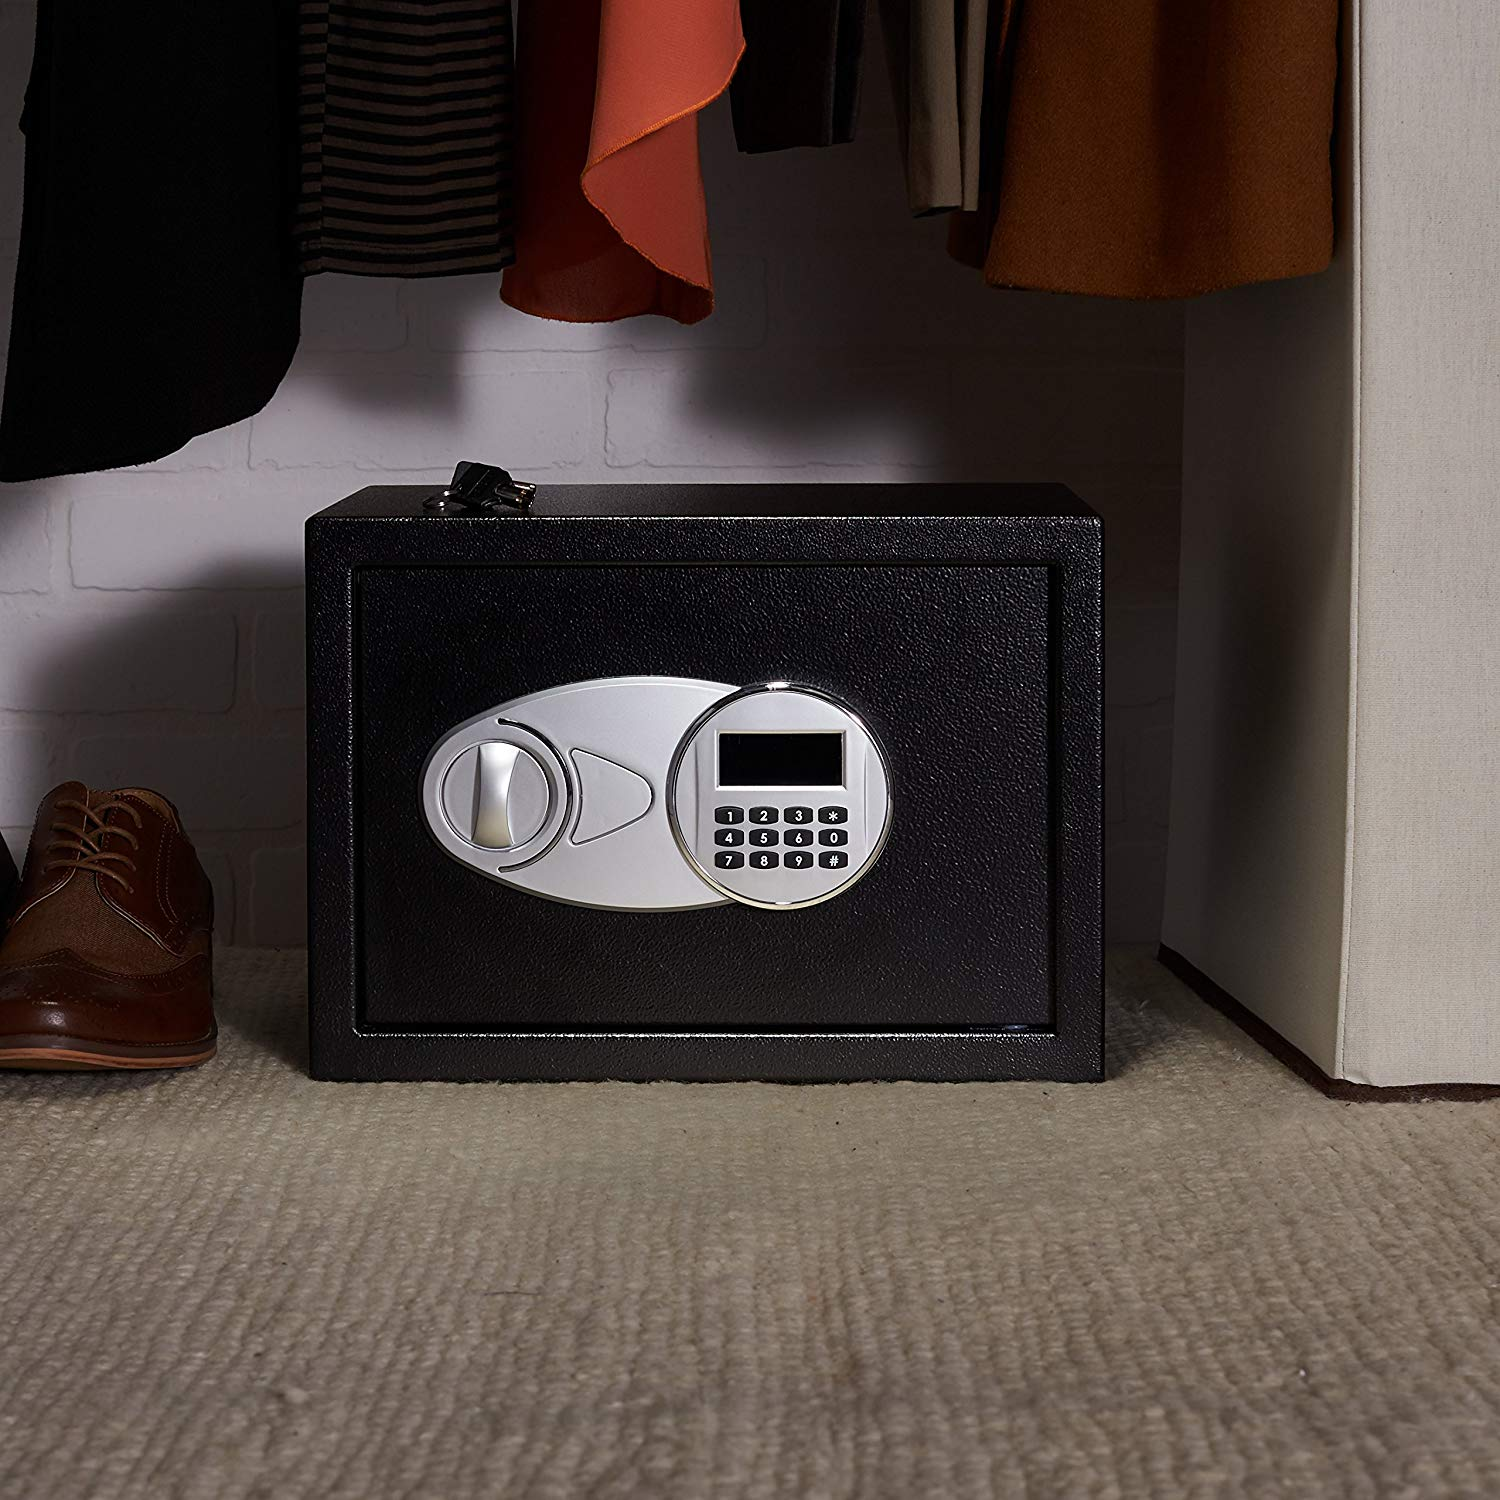 Small safes